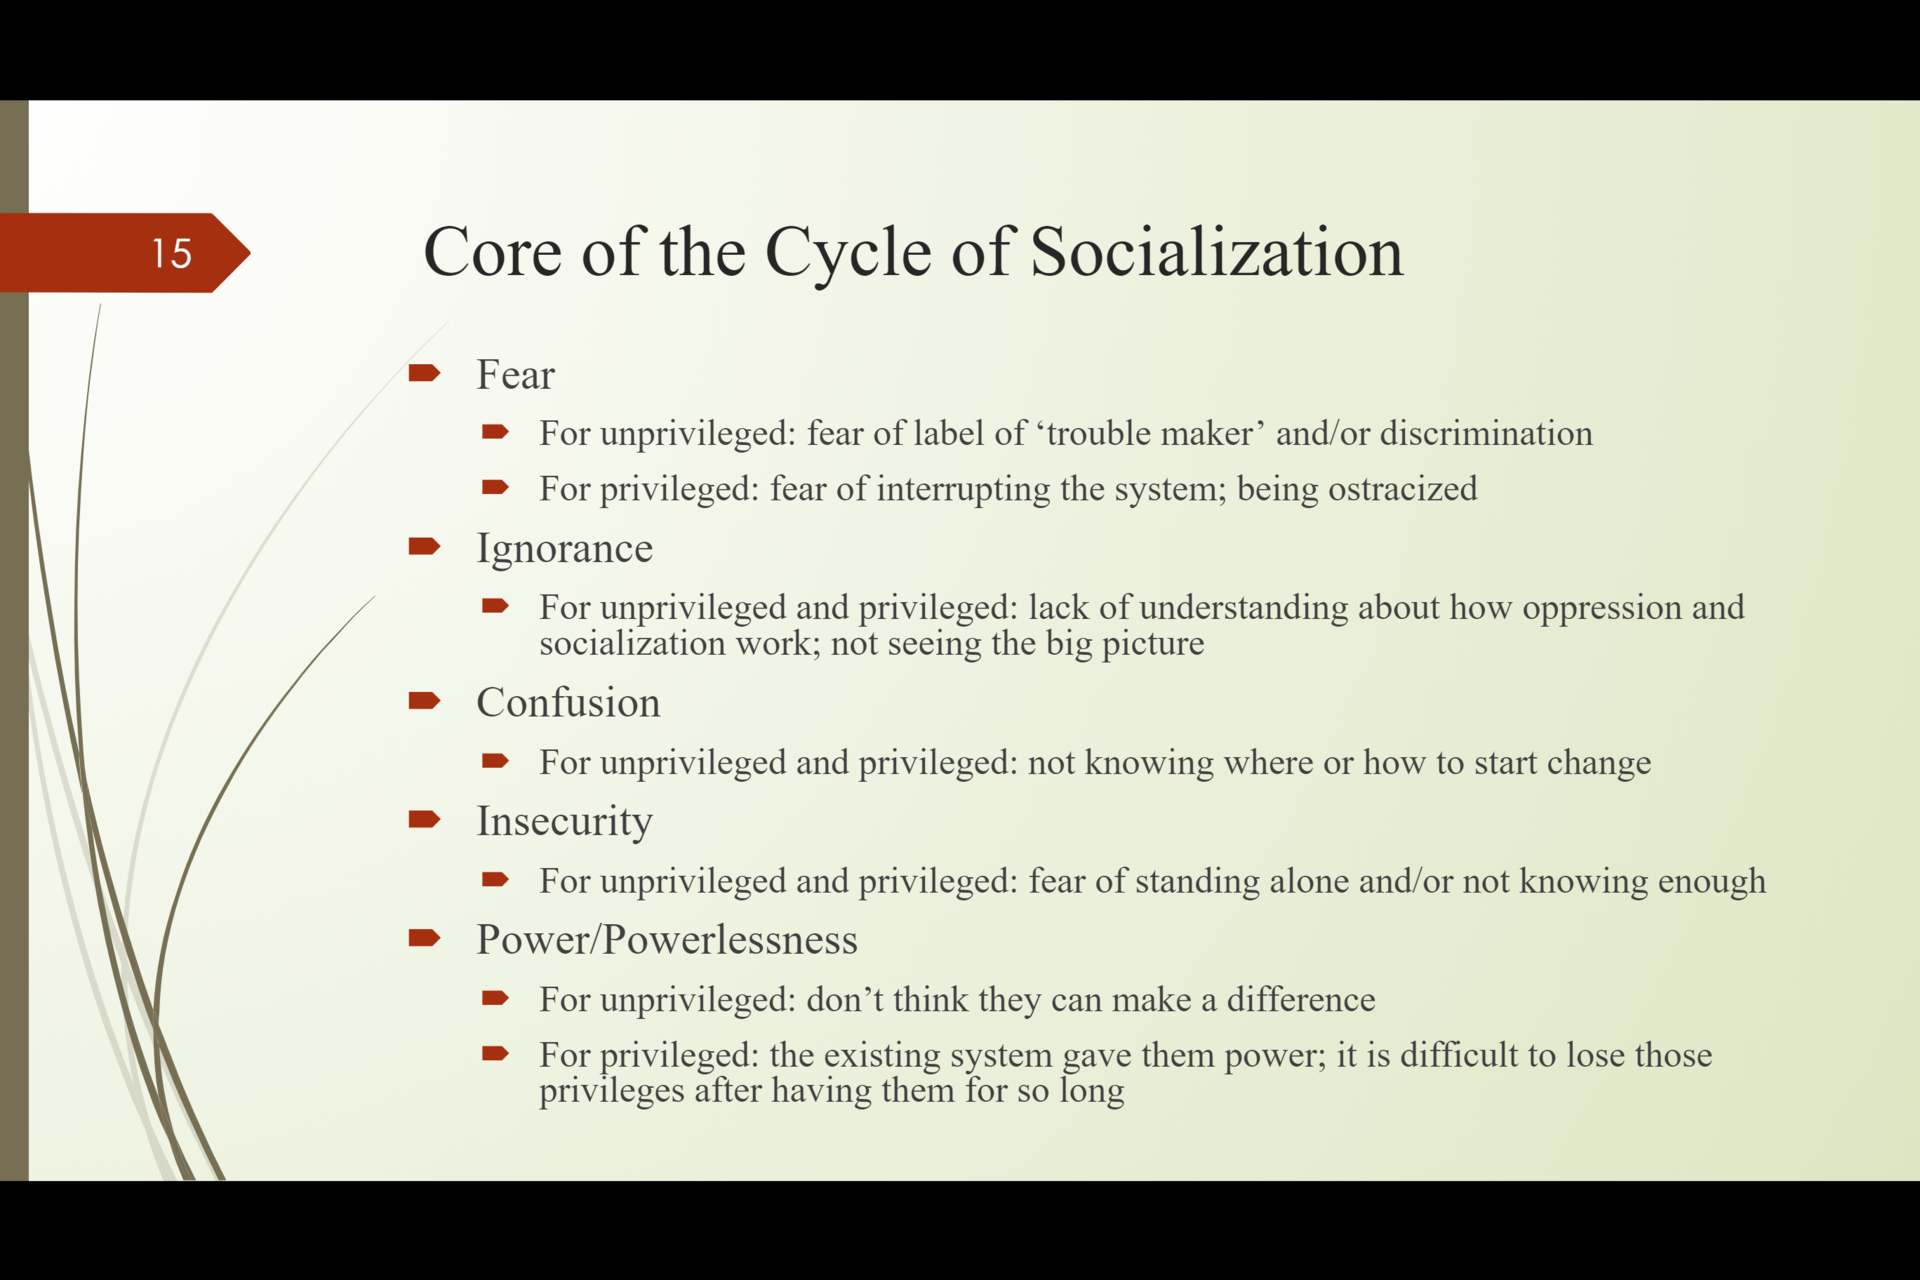 Core of the Cycle of Socialization (Harris, 2004)